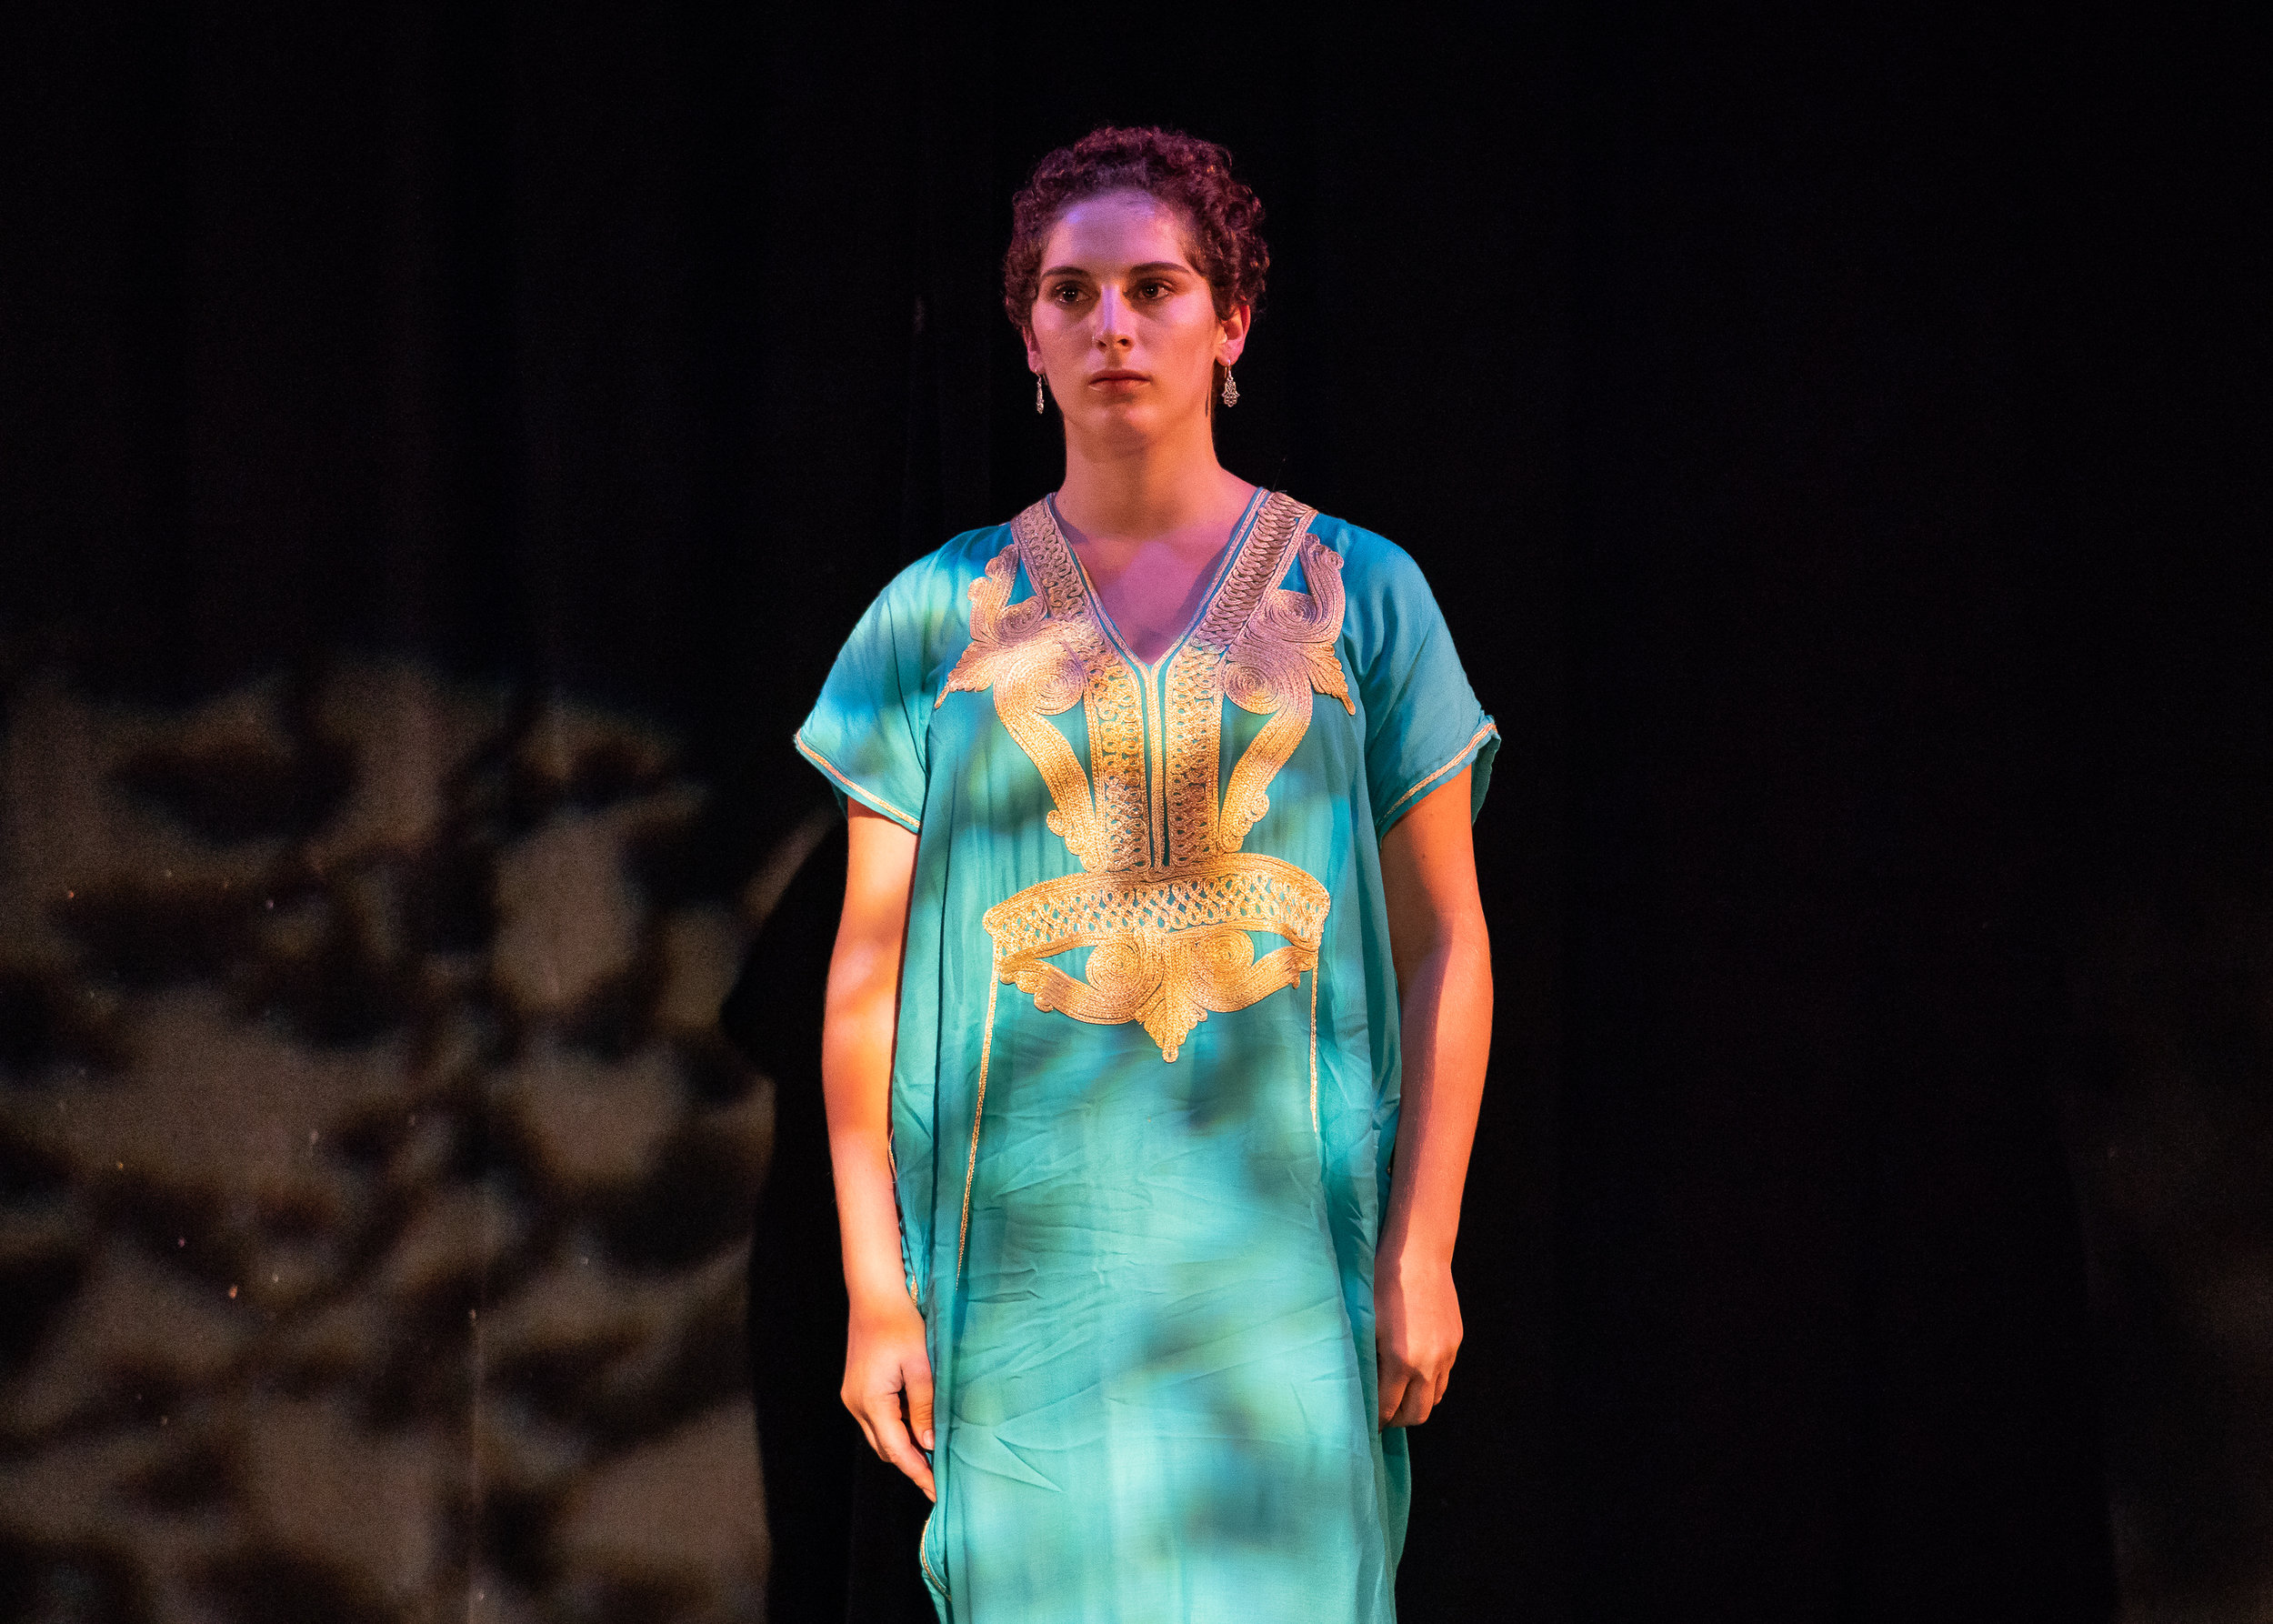 Hannah Goldman presented a performance piece about her identify as an Arab Jew.